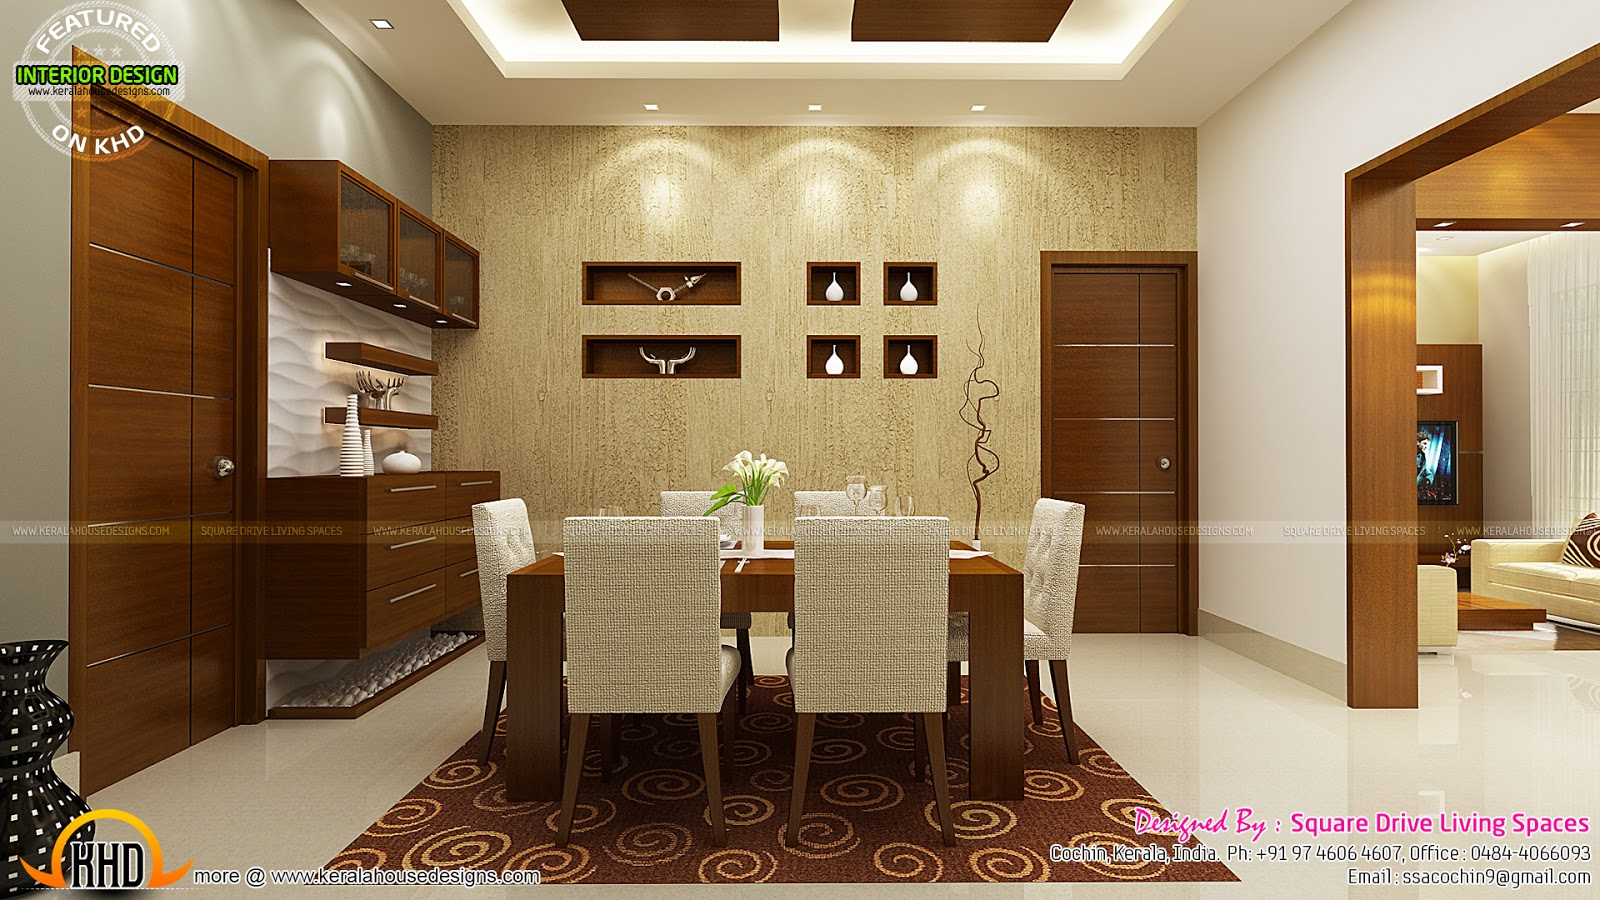 Contemporary kitchen dining and living room kerala home design and floor plans Home design dining room ideas